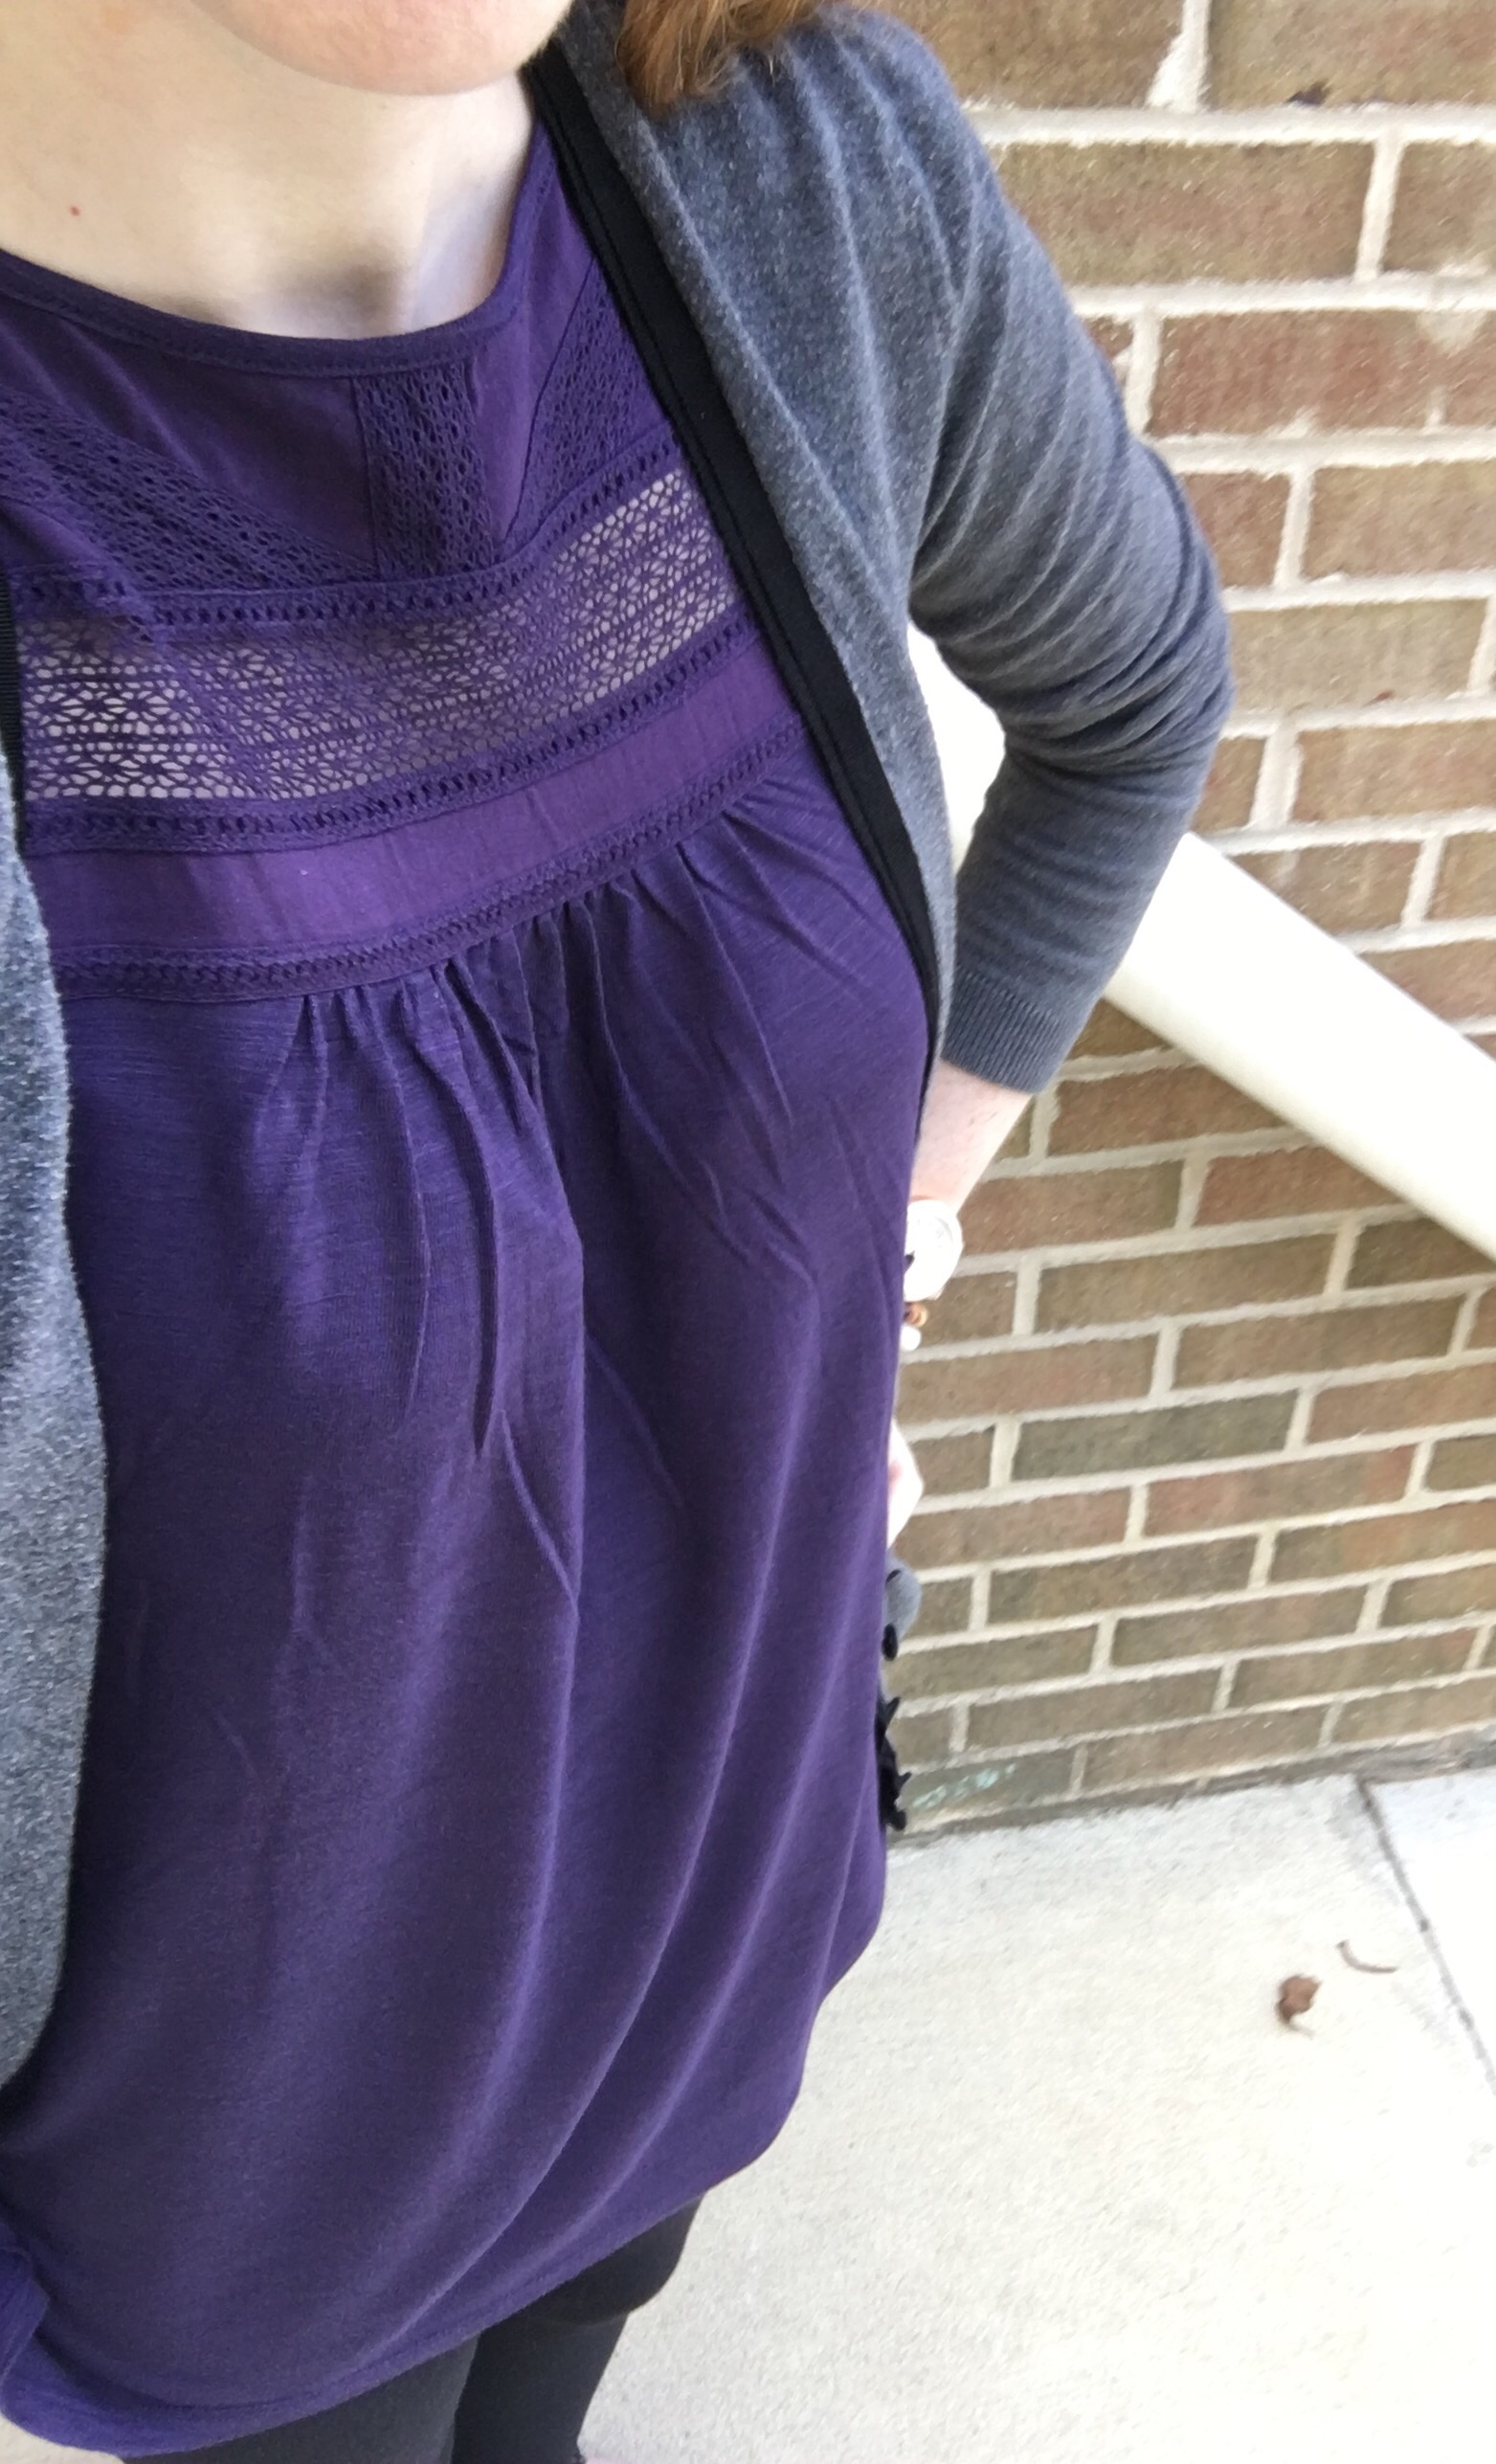 I've already worn the tank, and I'm kind of obsessed. It's super comfy but looks fancy, it's long enough to wear with leggings, and it's PURPLE! The trifecta of perfection.